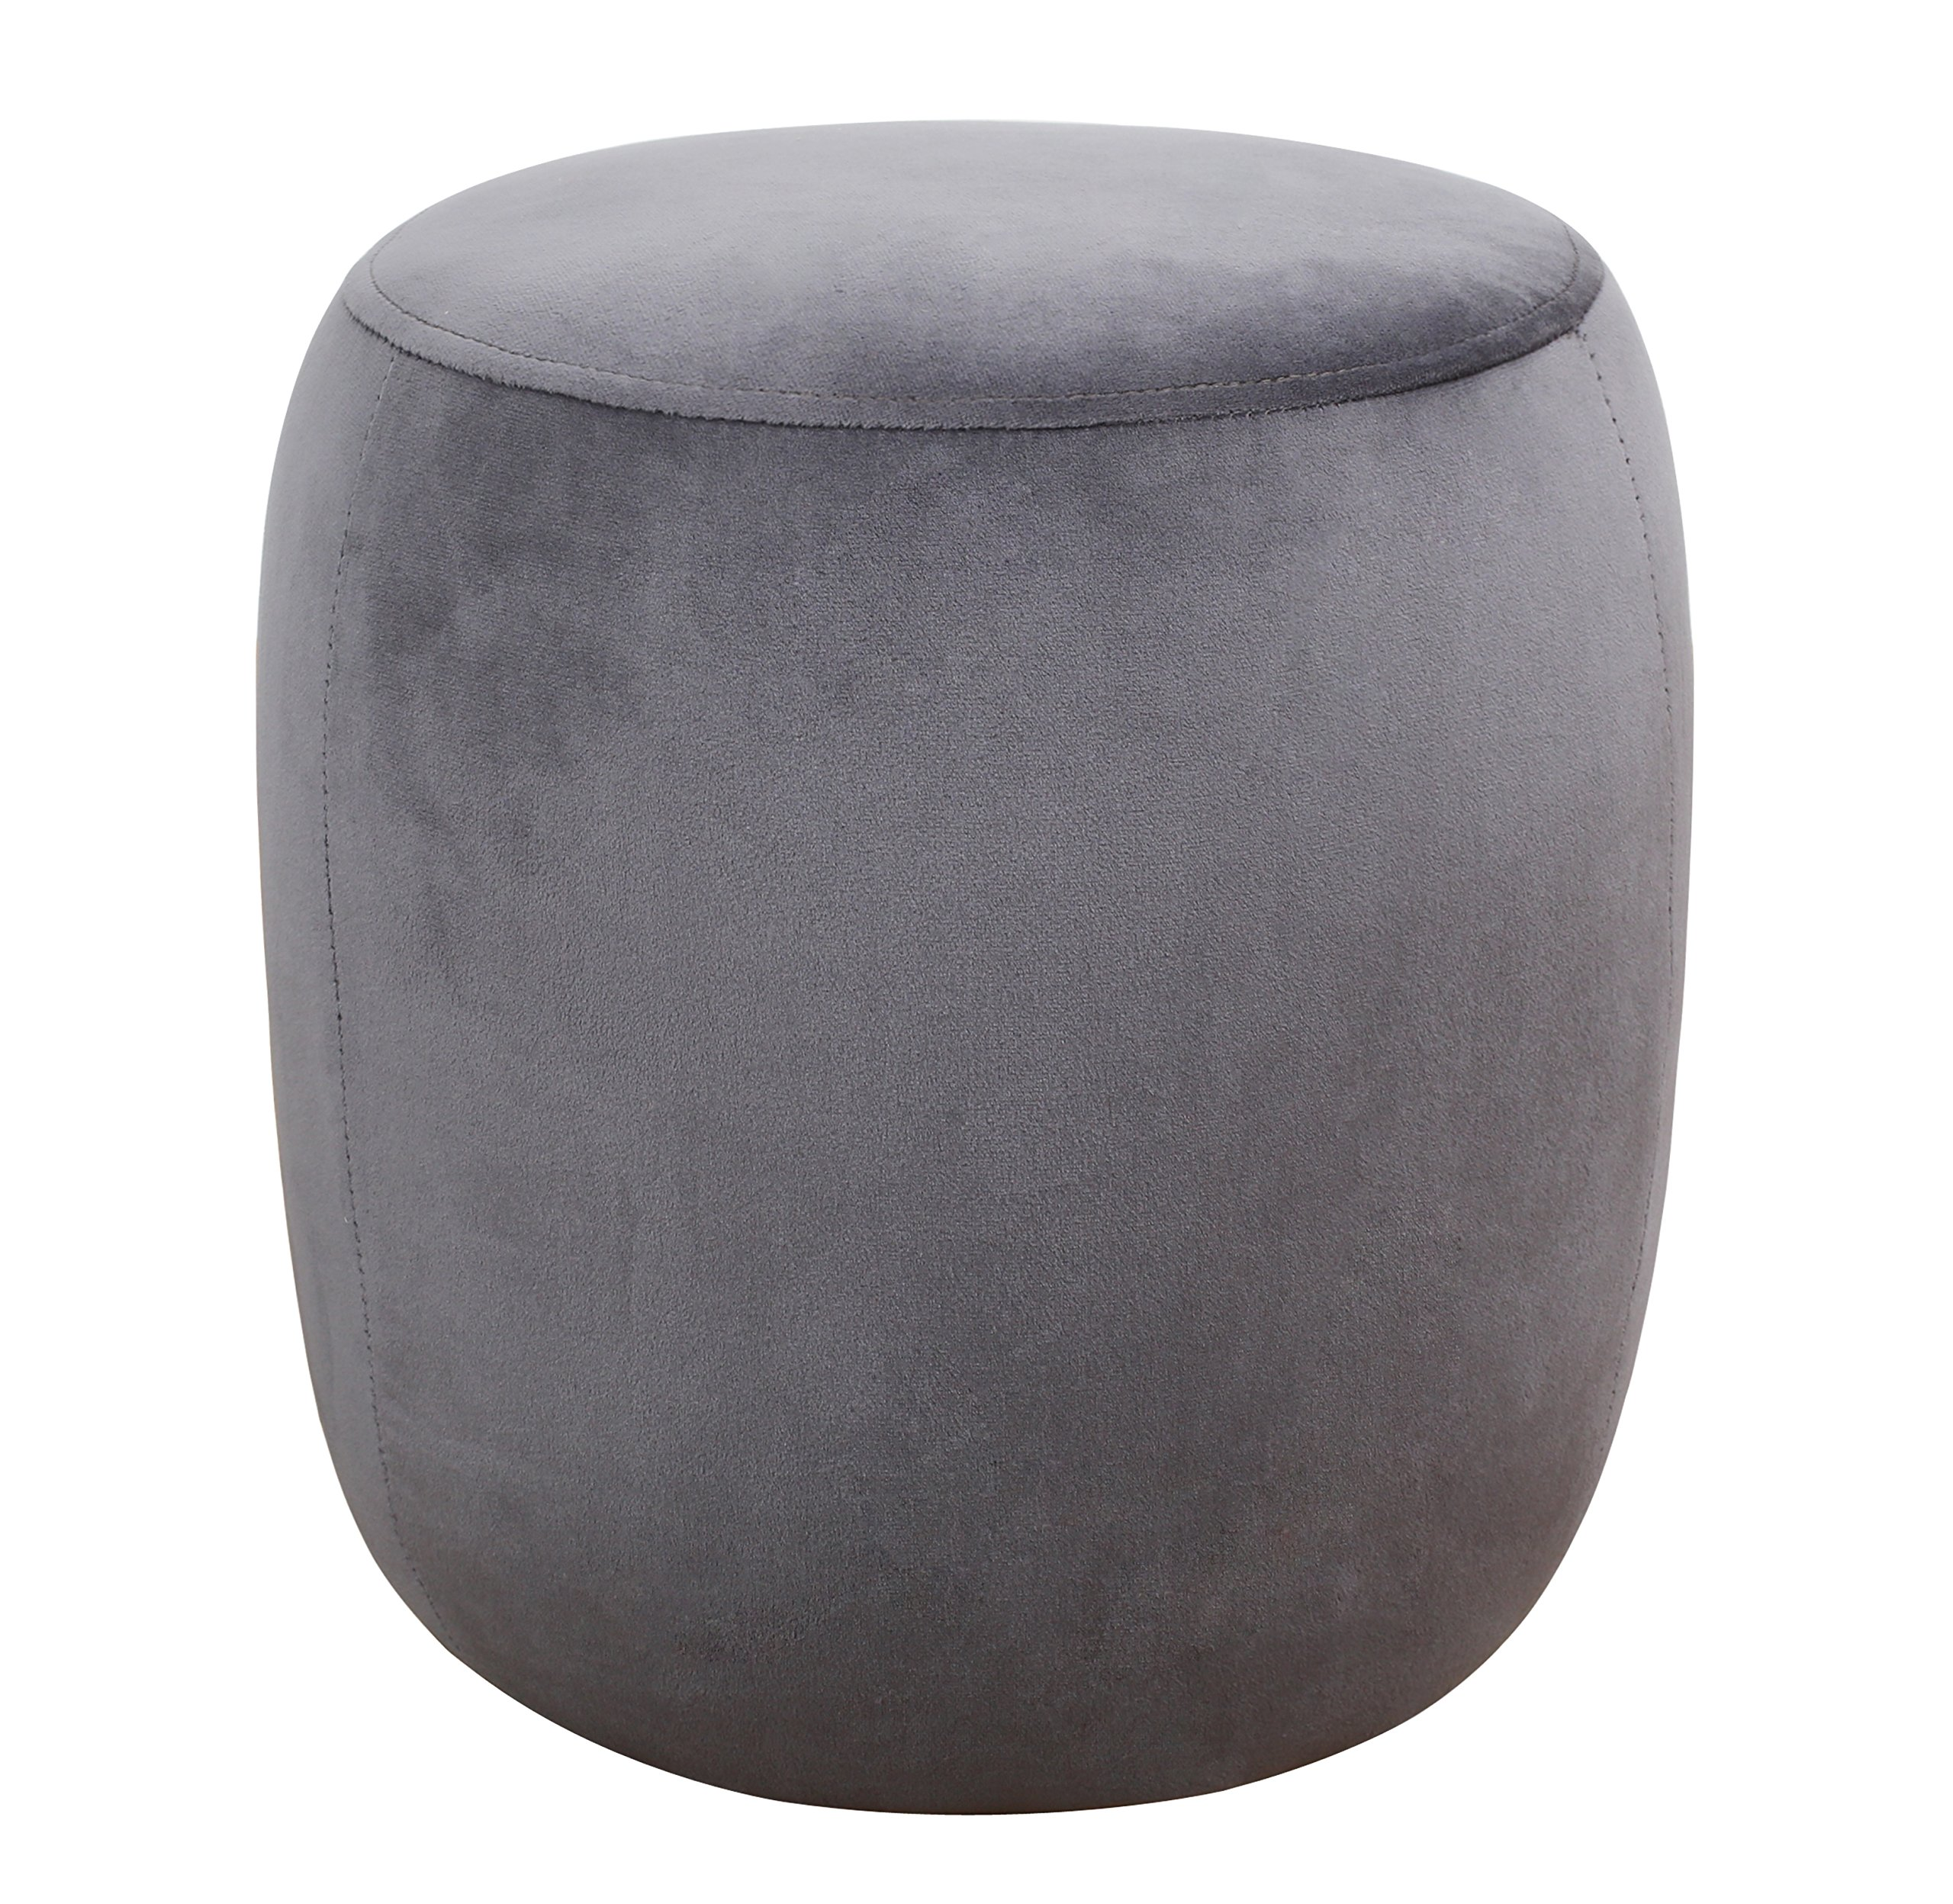 TOV Furniture The Willow Collection Modern Velvet Upholstered Round Ottoman, Grey